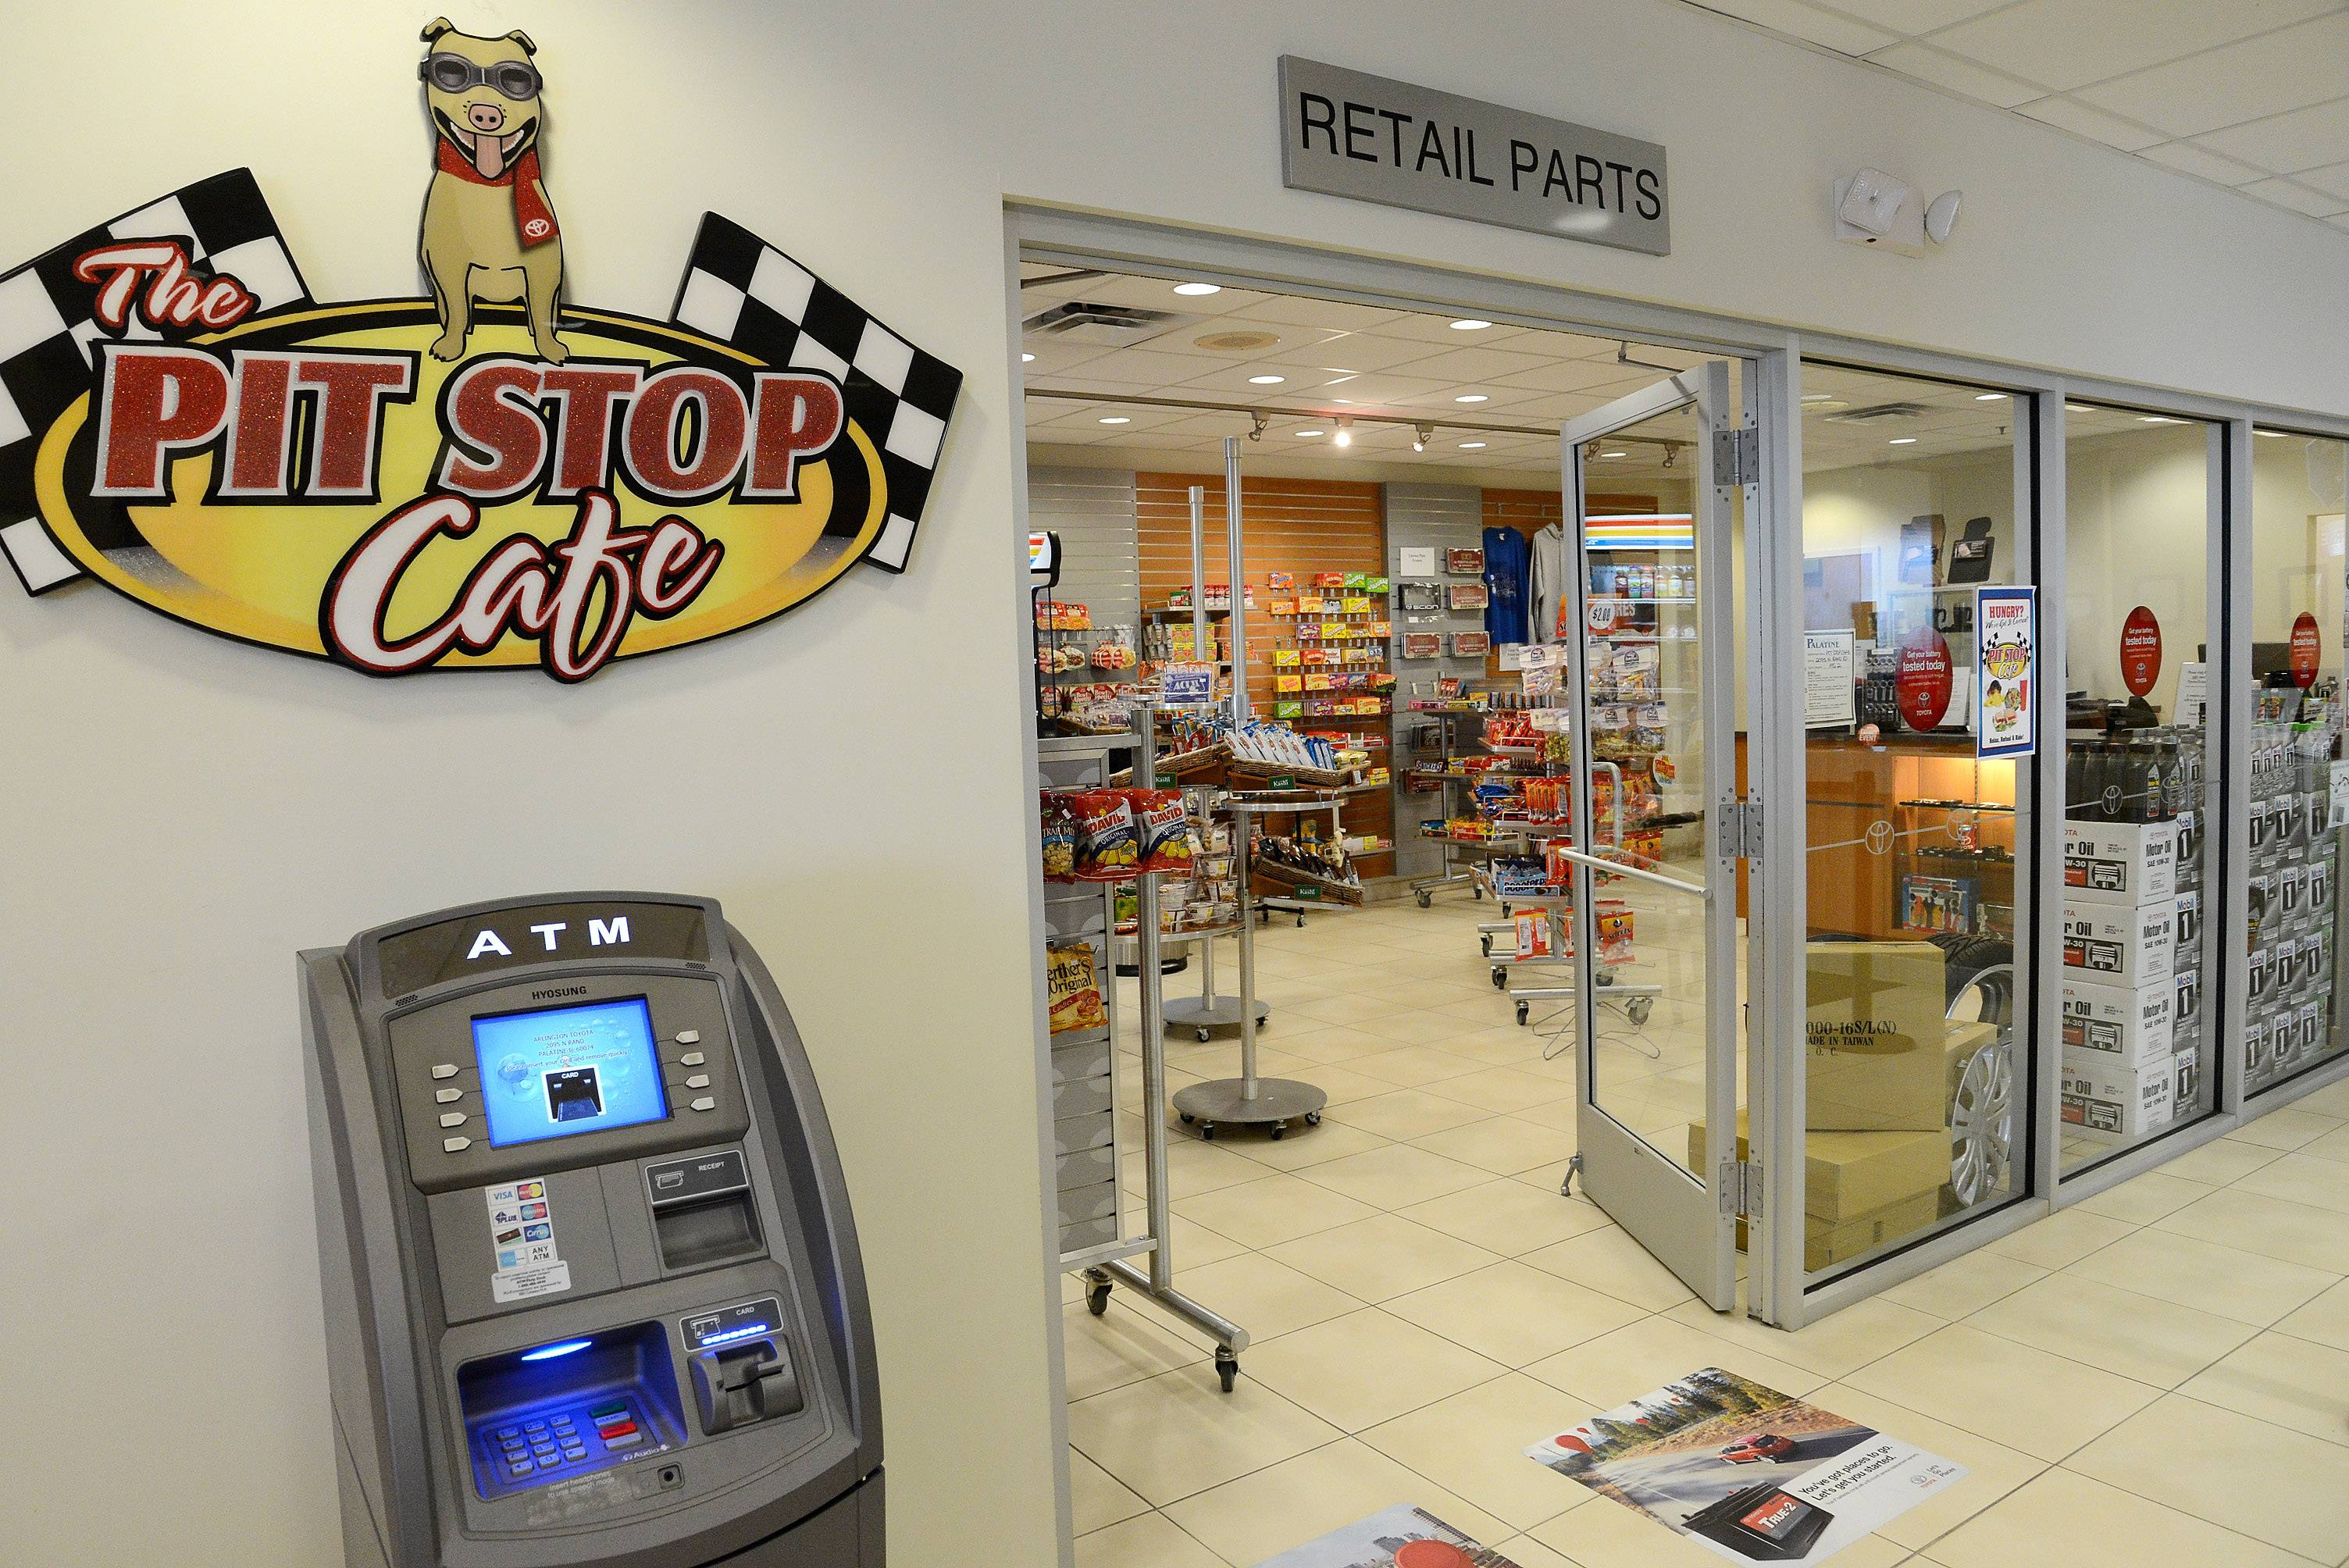 The Pit Stop Cafe is an auto minimart inside Arlington Toyota/Scion.